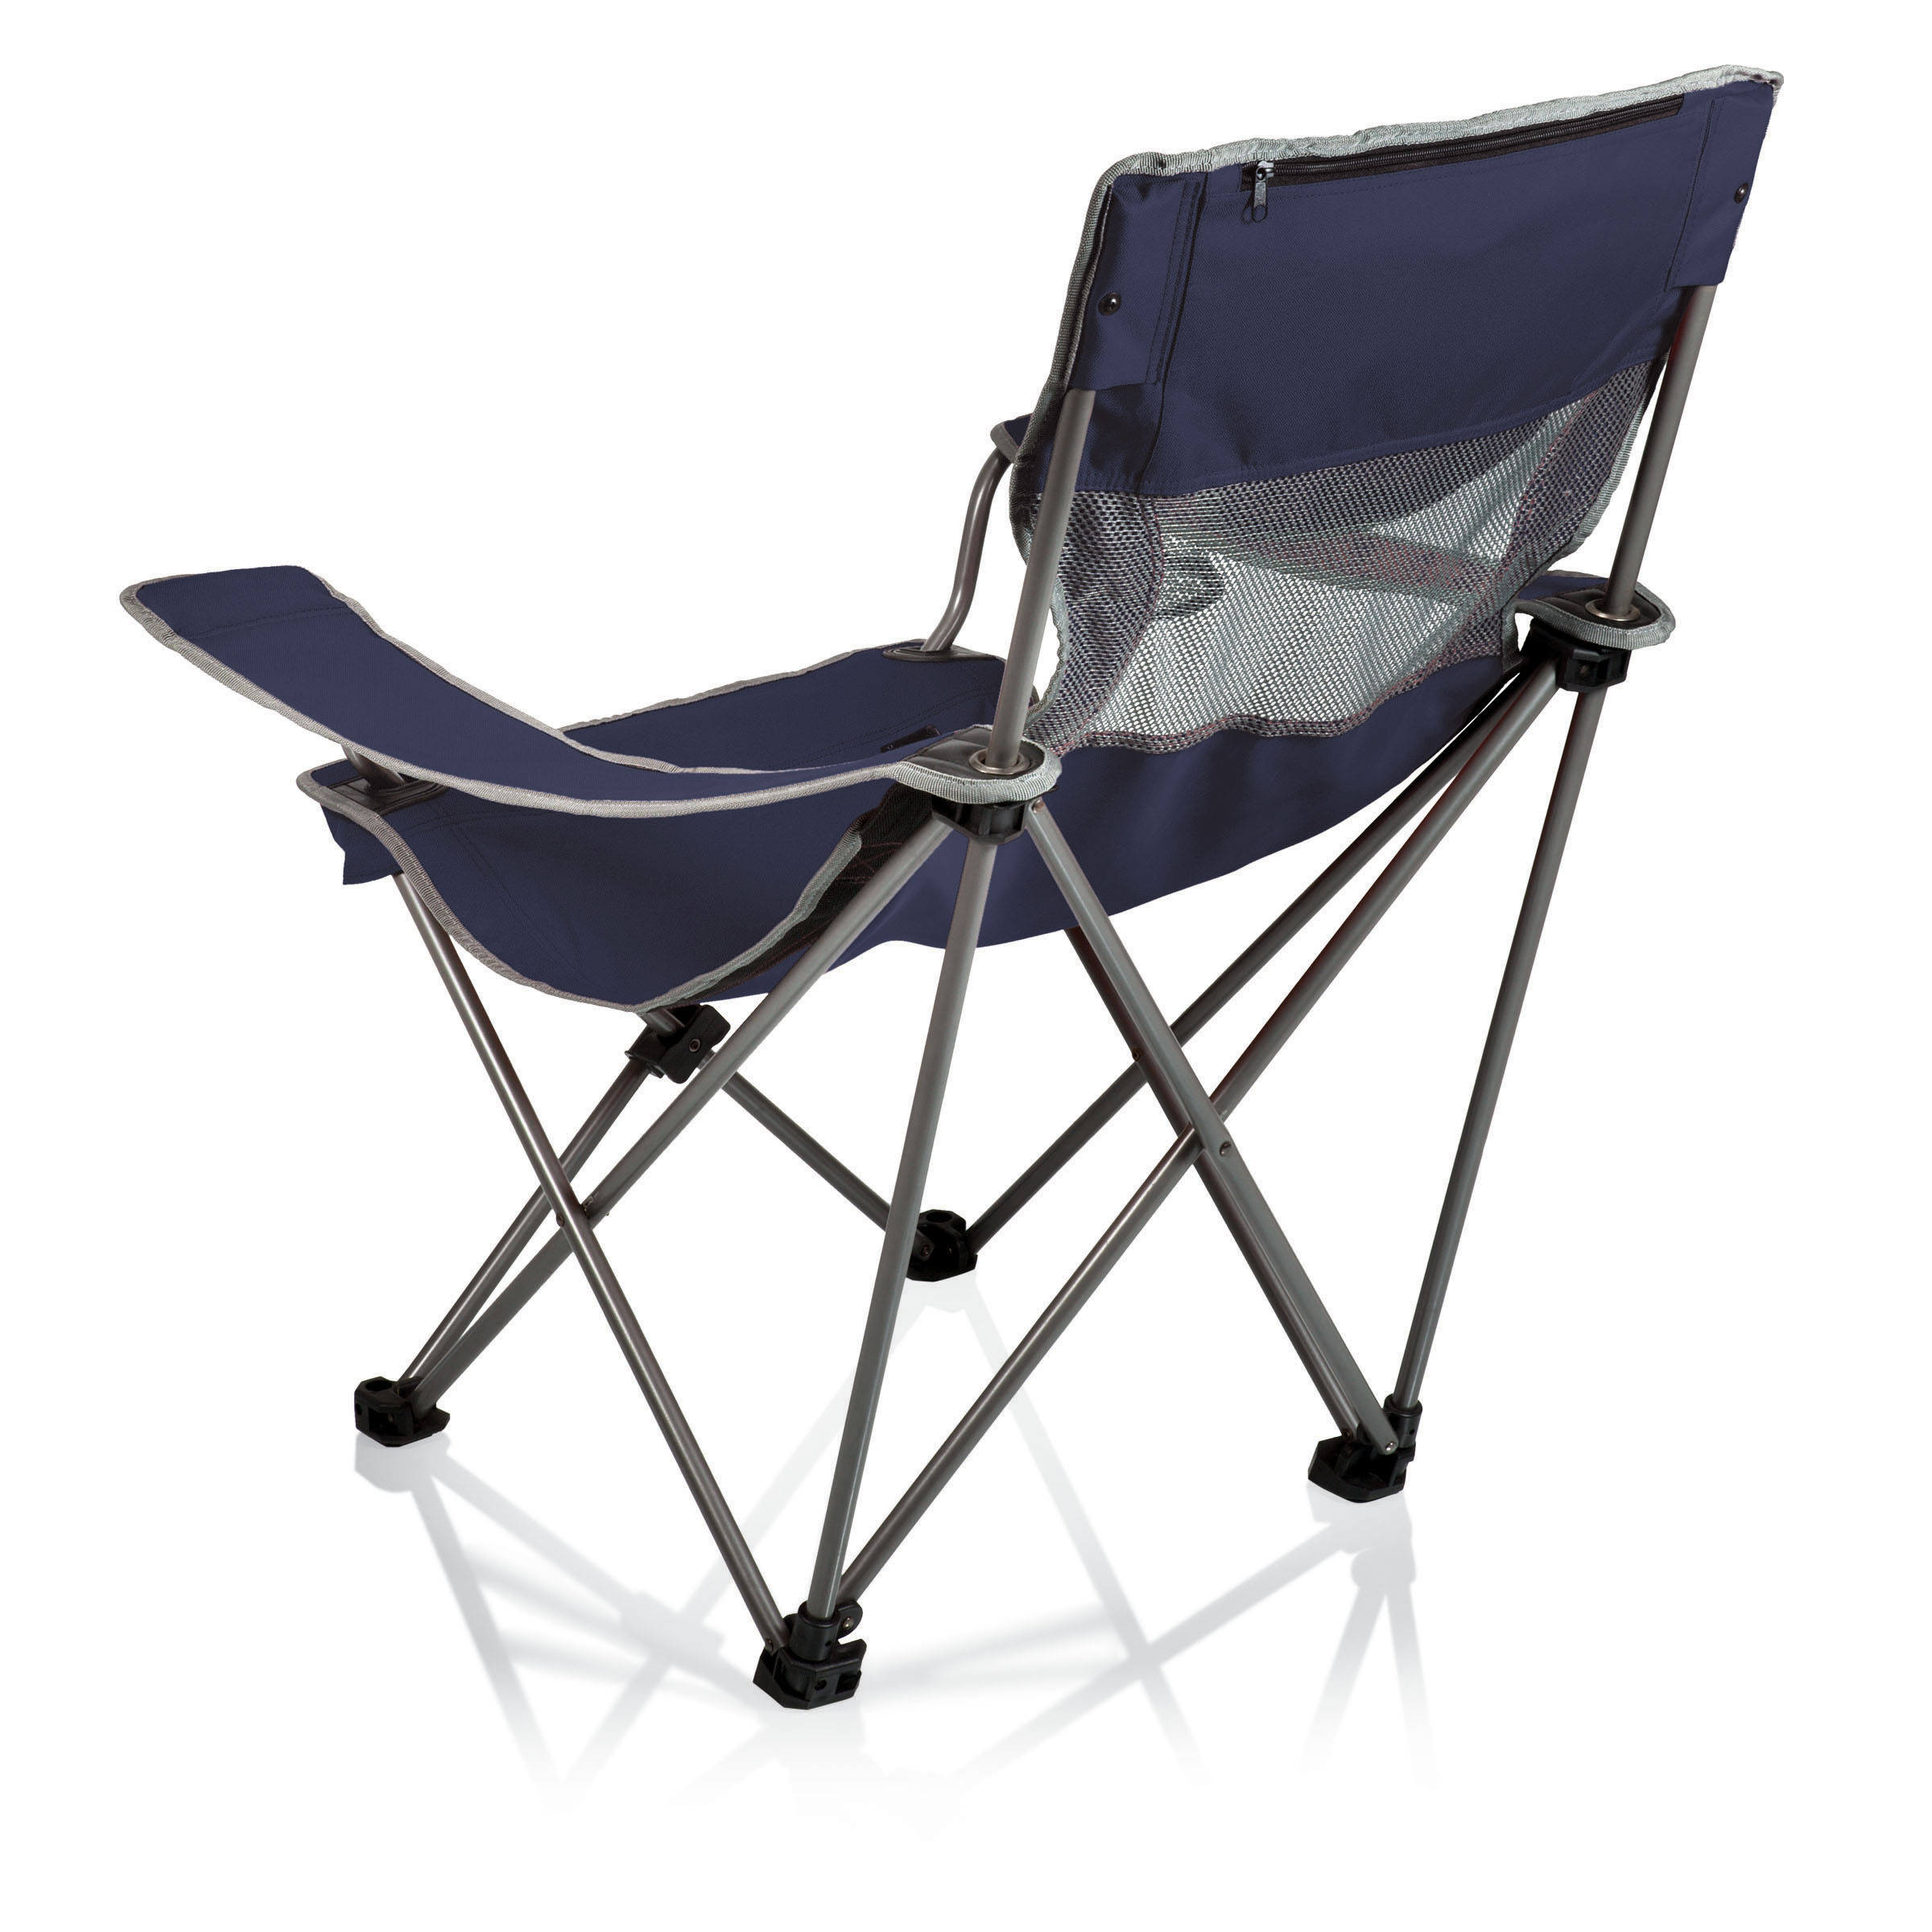 Picnic Time Campsite Folding Camp Chair Navy Grey